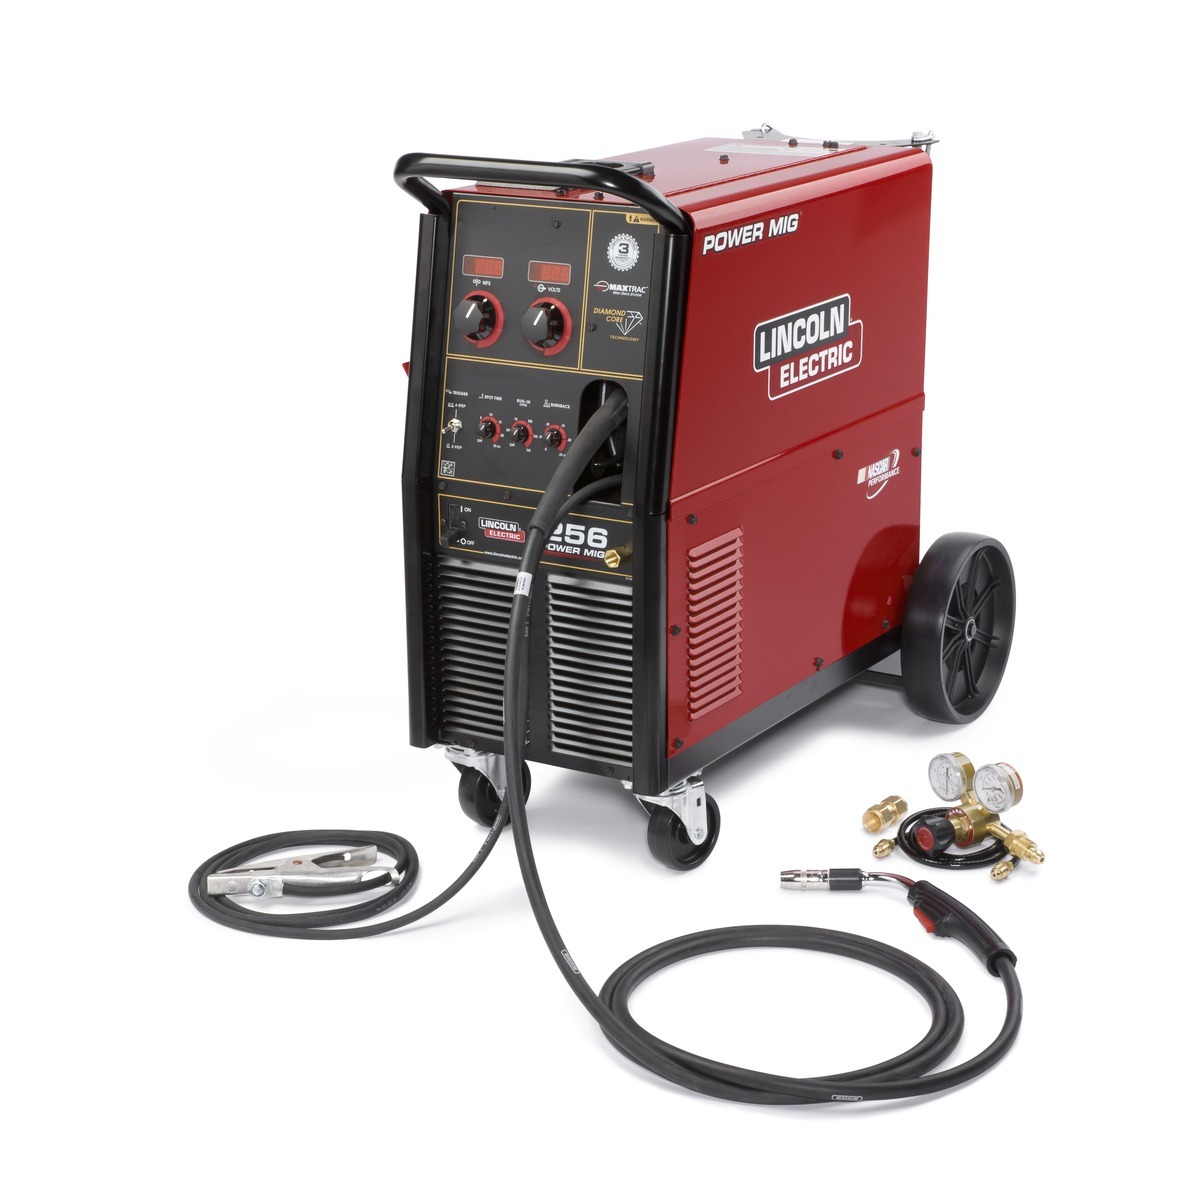 Lincoln Electric Mig 256 Welder 230 460 575volt With Magnum